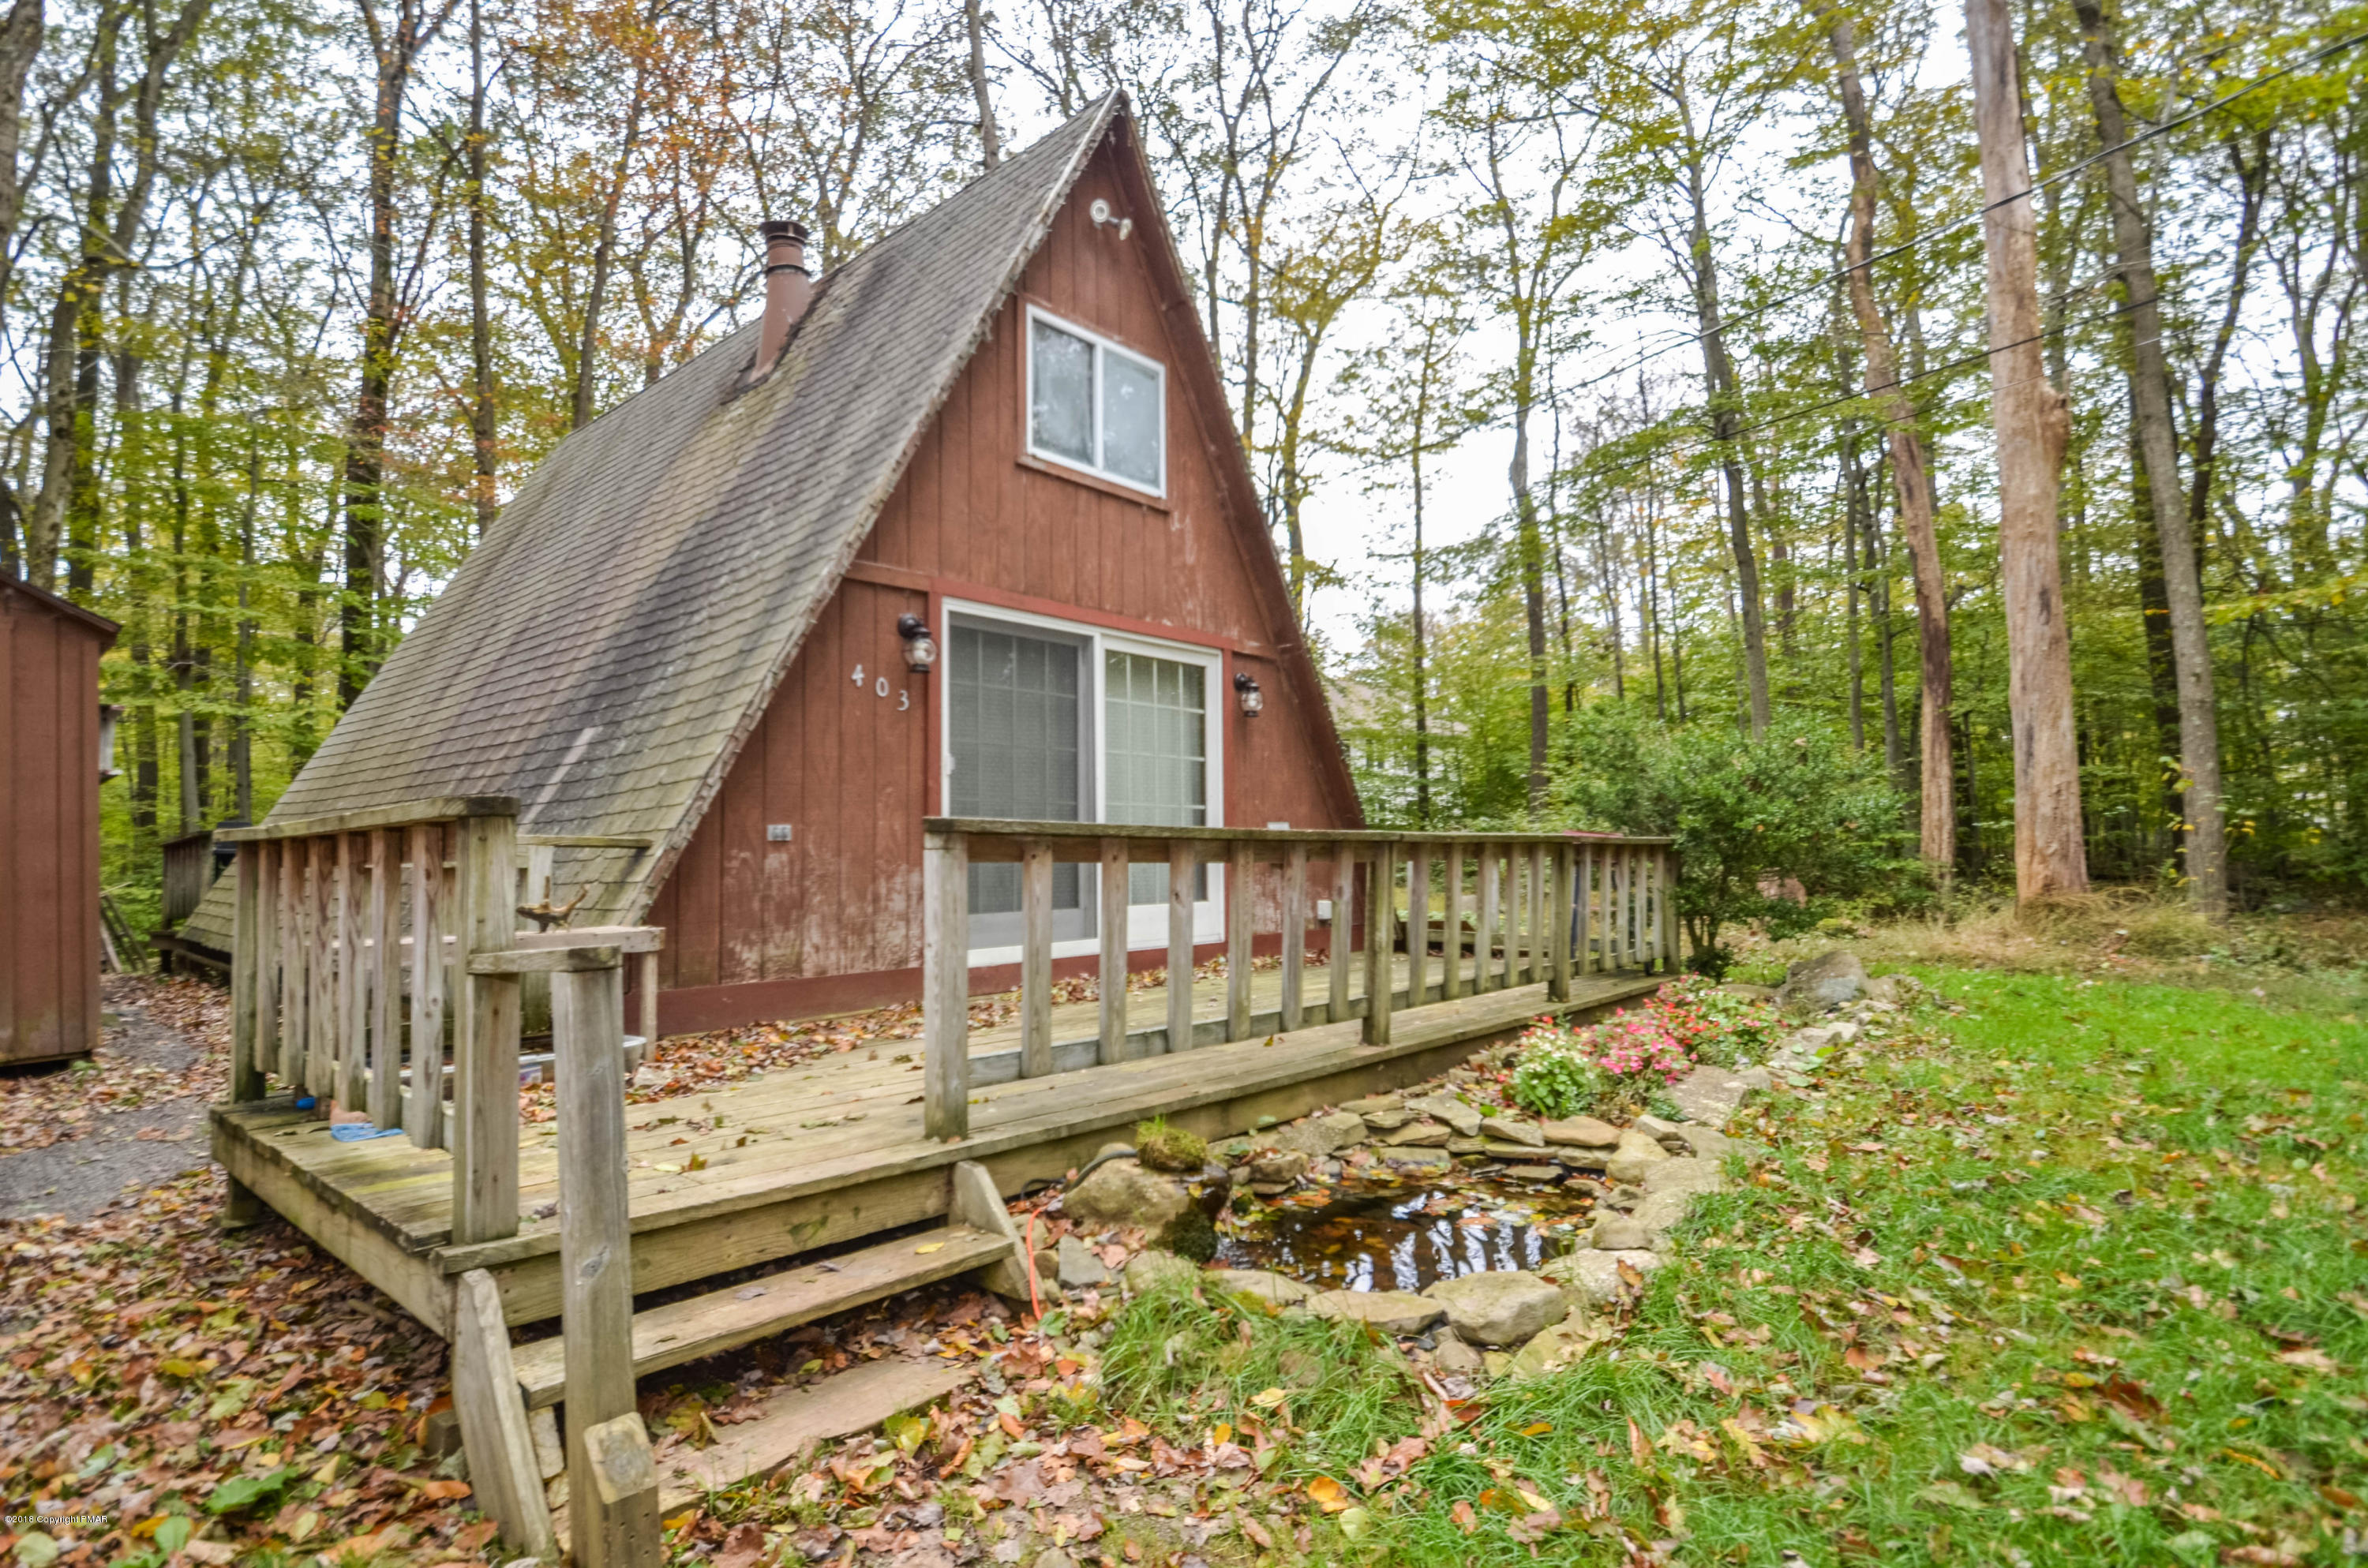 403 Antler Ln Tobyhanna Pa Mls Pm 62673 Bradley Realty Of The